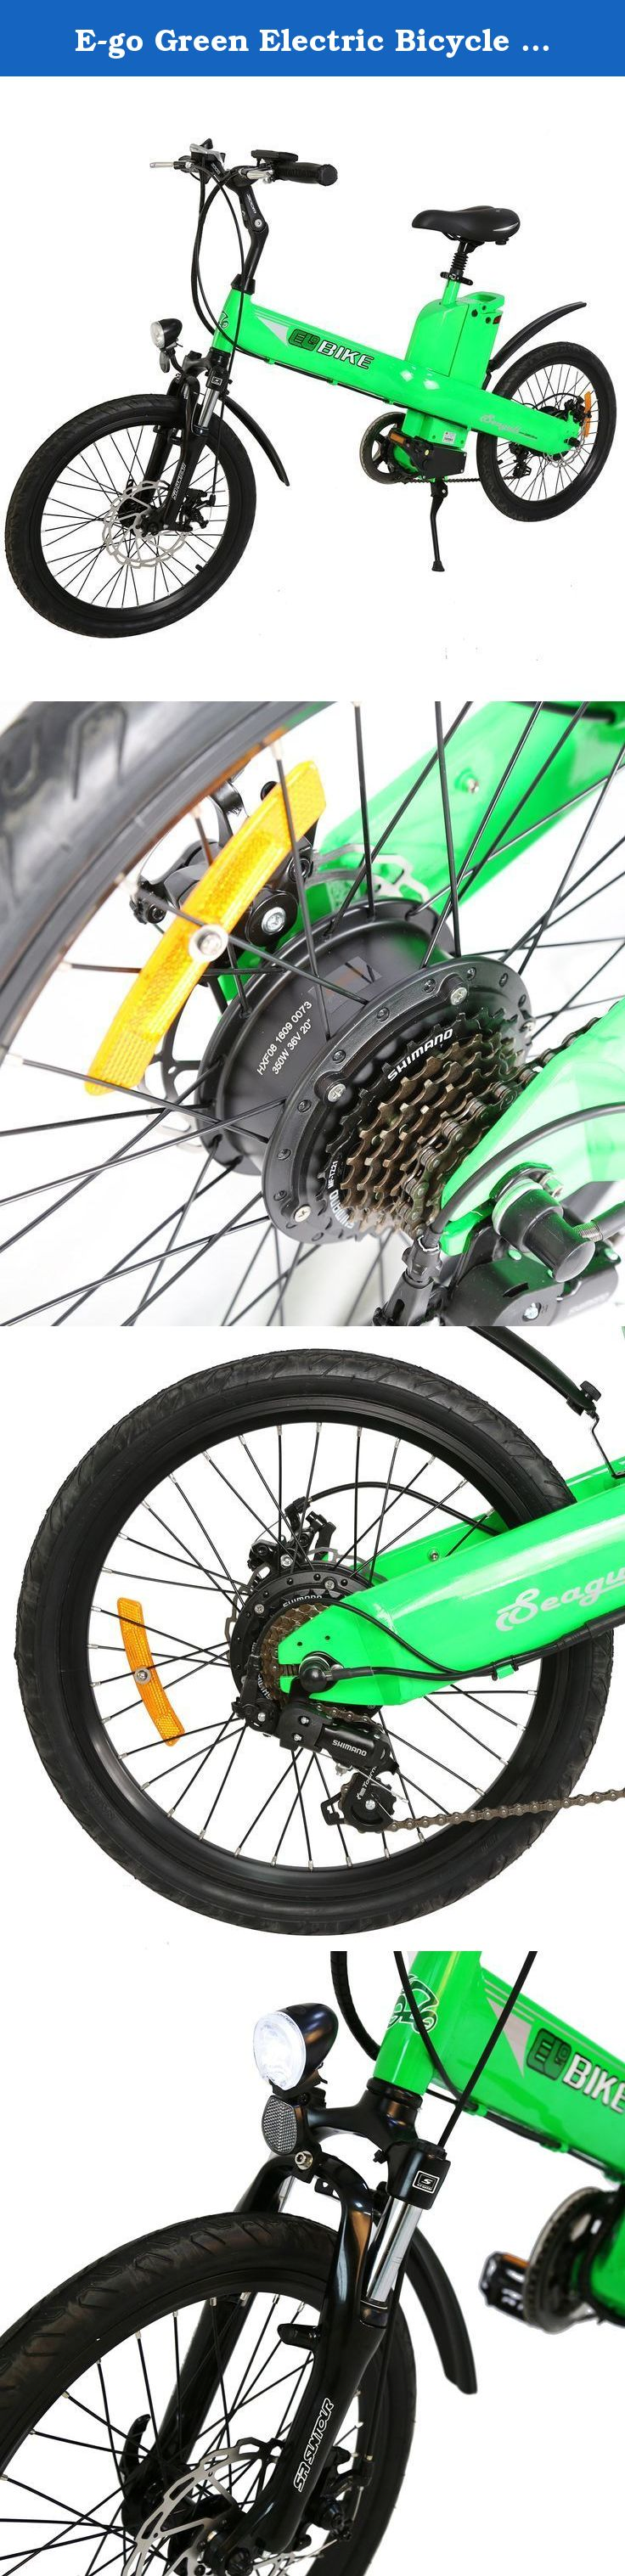 E Go Green Electric Bicycle 20 Inch Cycling 36v 350w E Bike Lithium Battery City Work Let S Ride E Bike Drive Less Sav Electric Bicycle Green Electric Bike